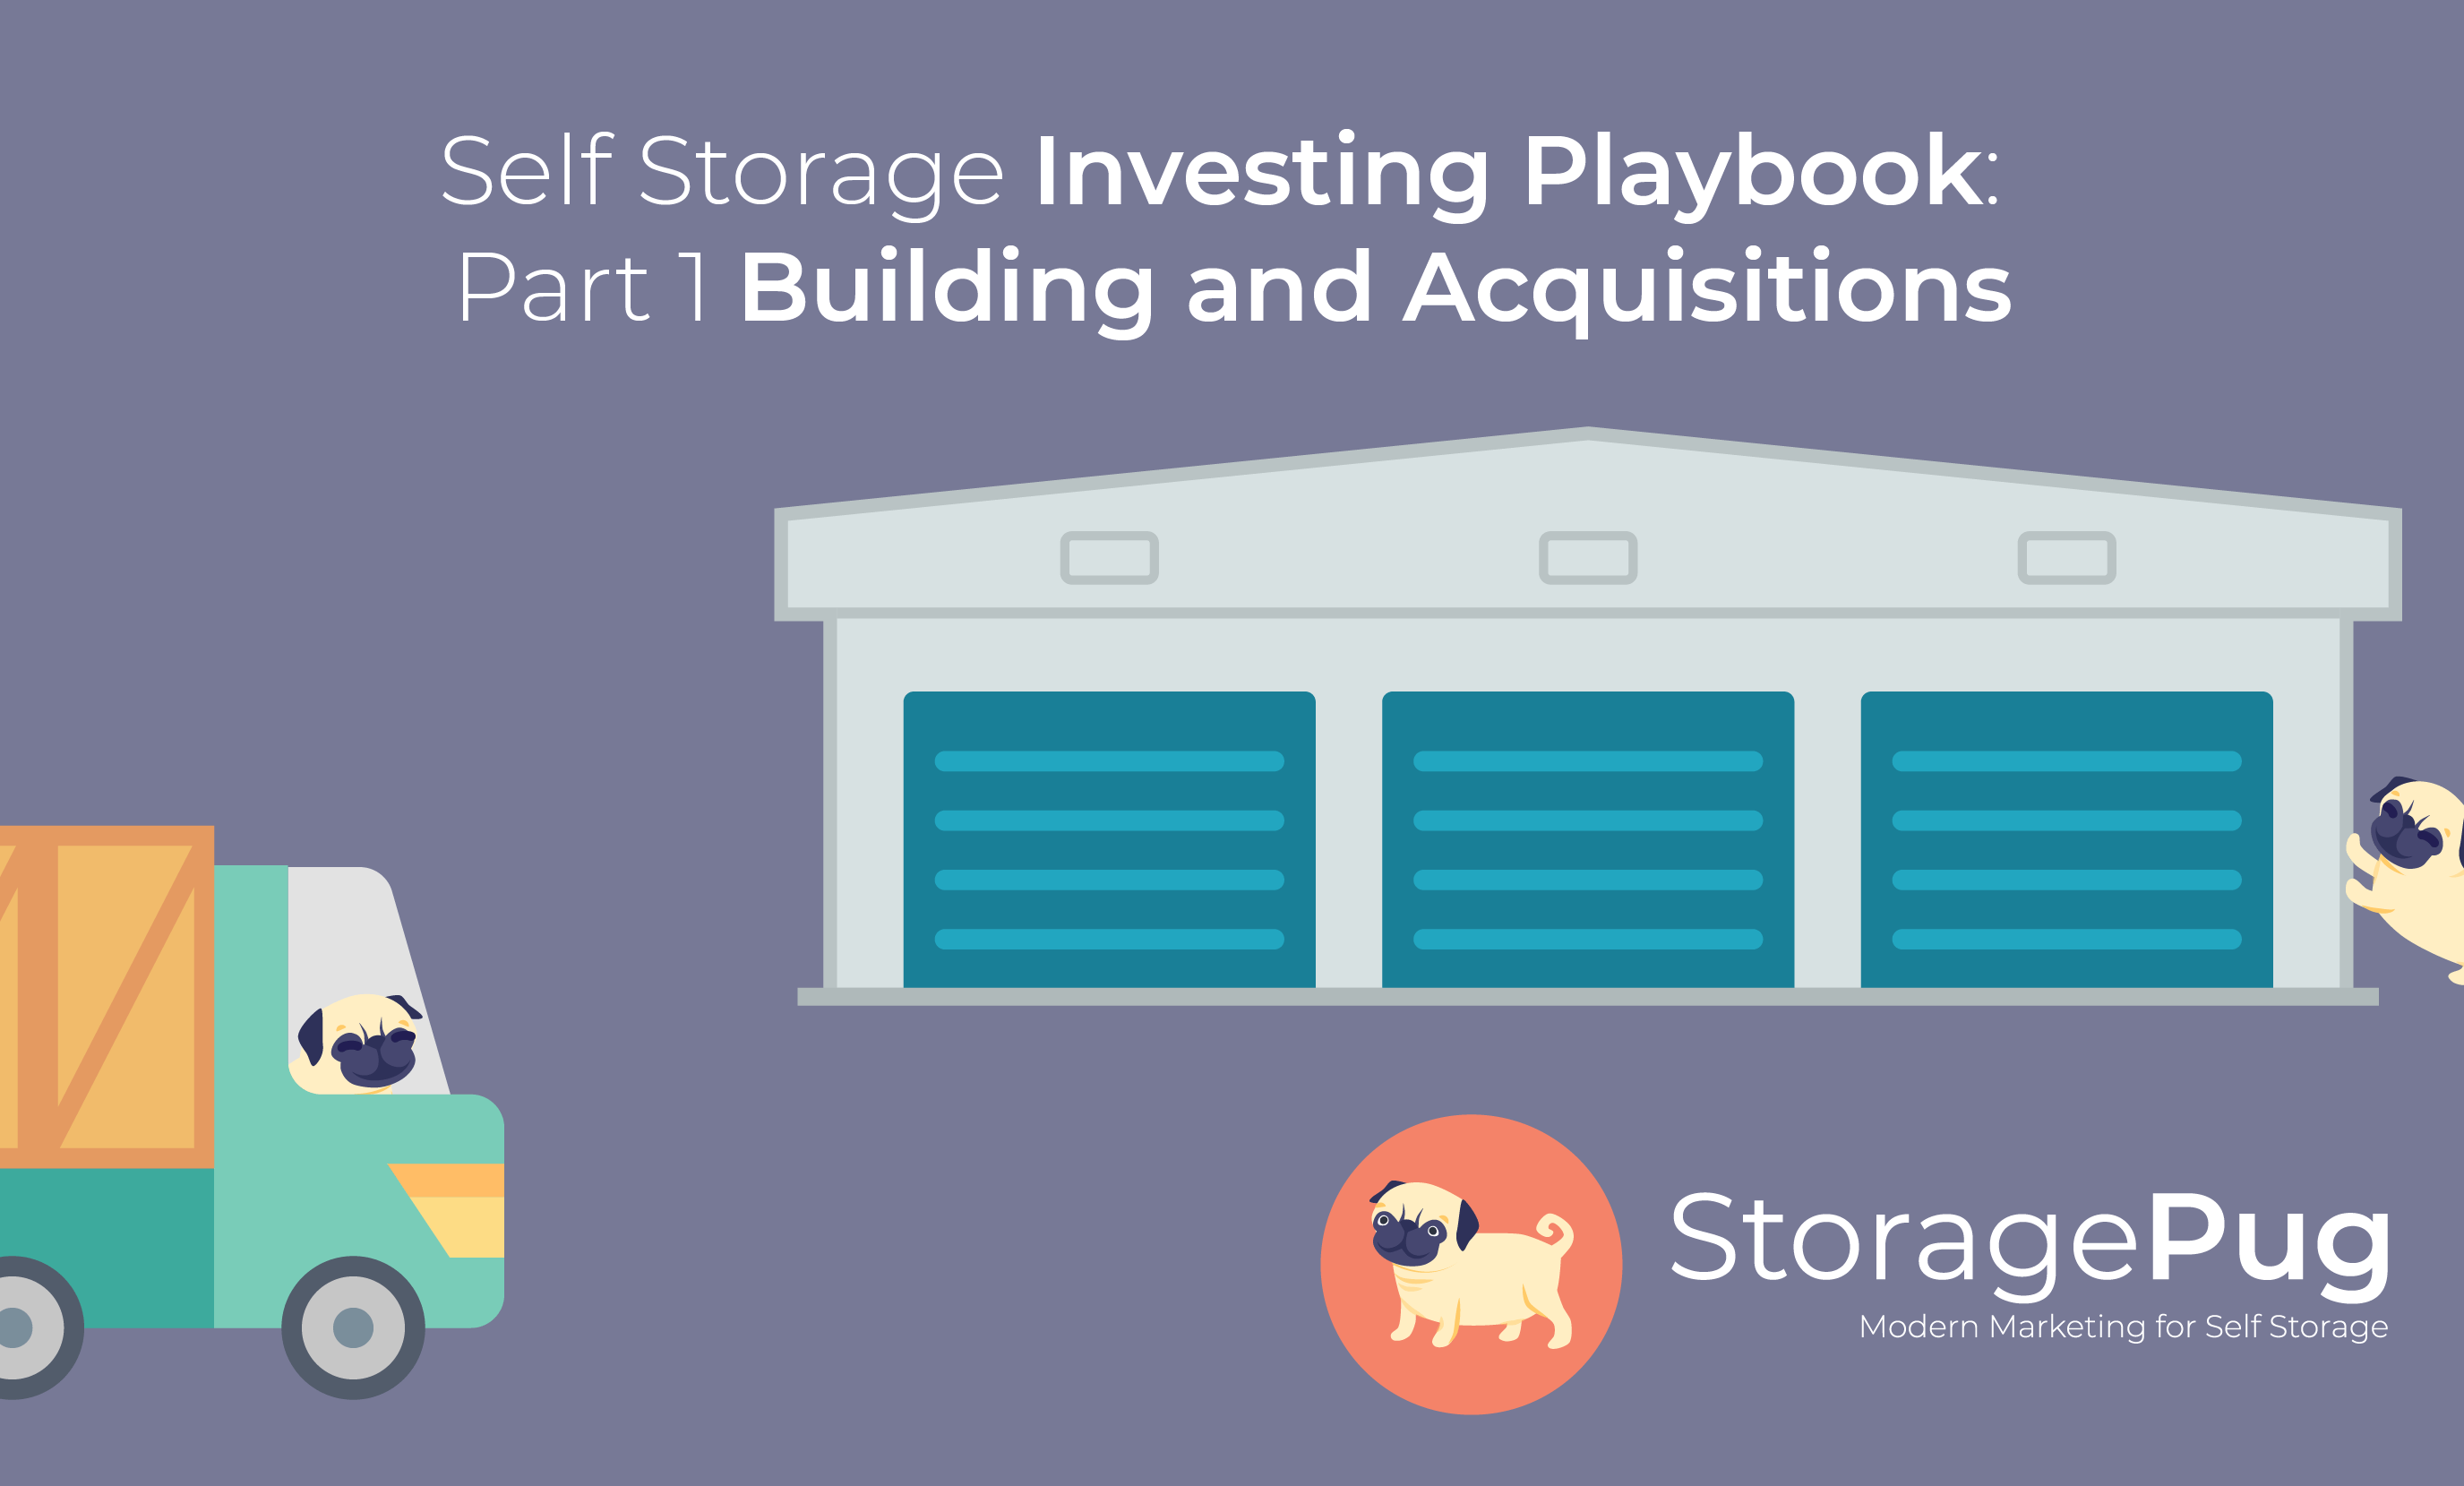 Self Storage Investing Playbook Part 1